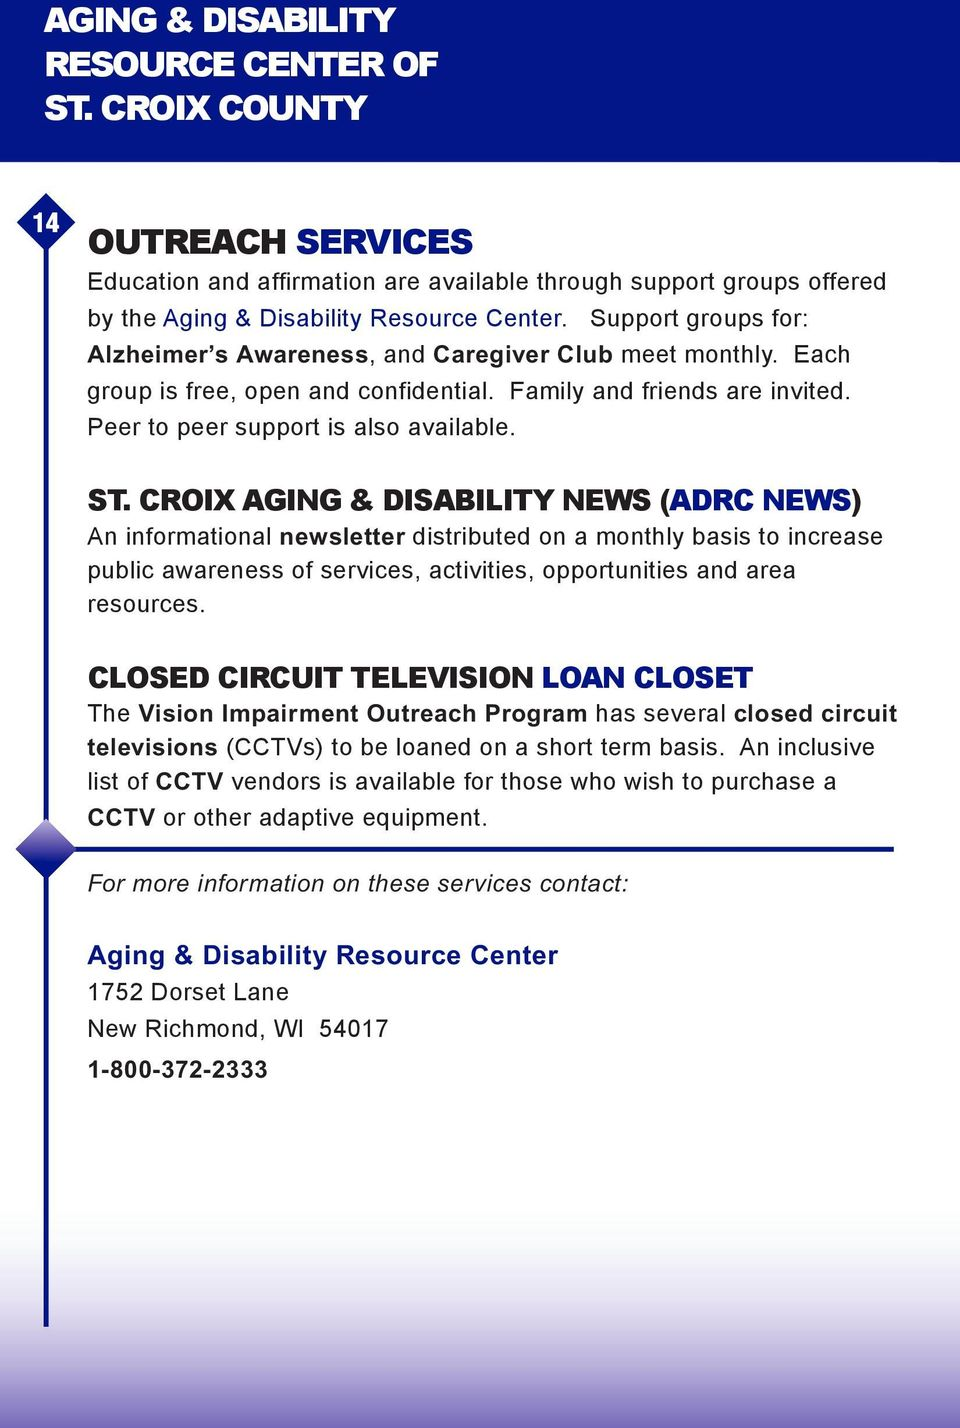 CROIX AGING & DISABILITY NEWS (ADRC NEWS) An informational newsletter distributed on a monthly basis to increase public awareness of services, activities, opportunities and area resources.